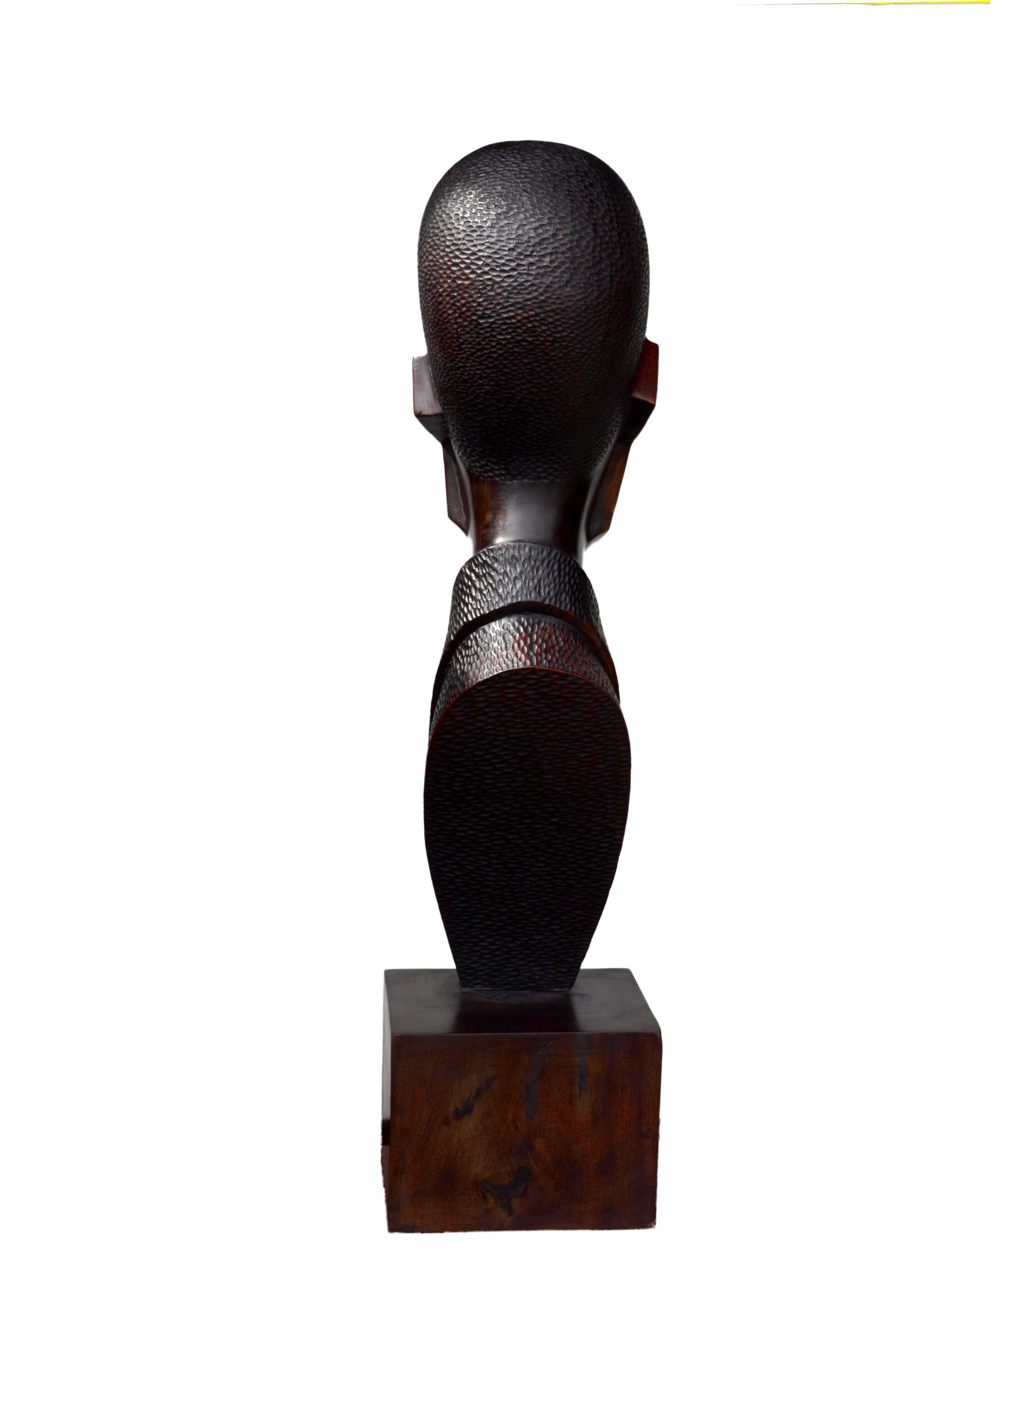 Comrade H - 41 Inches (Wood) 2014 (2)